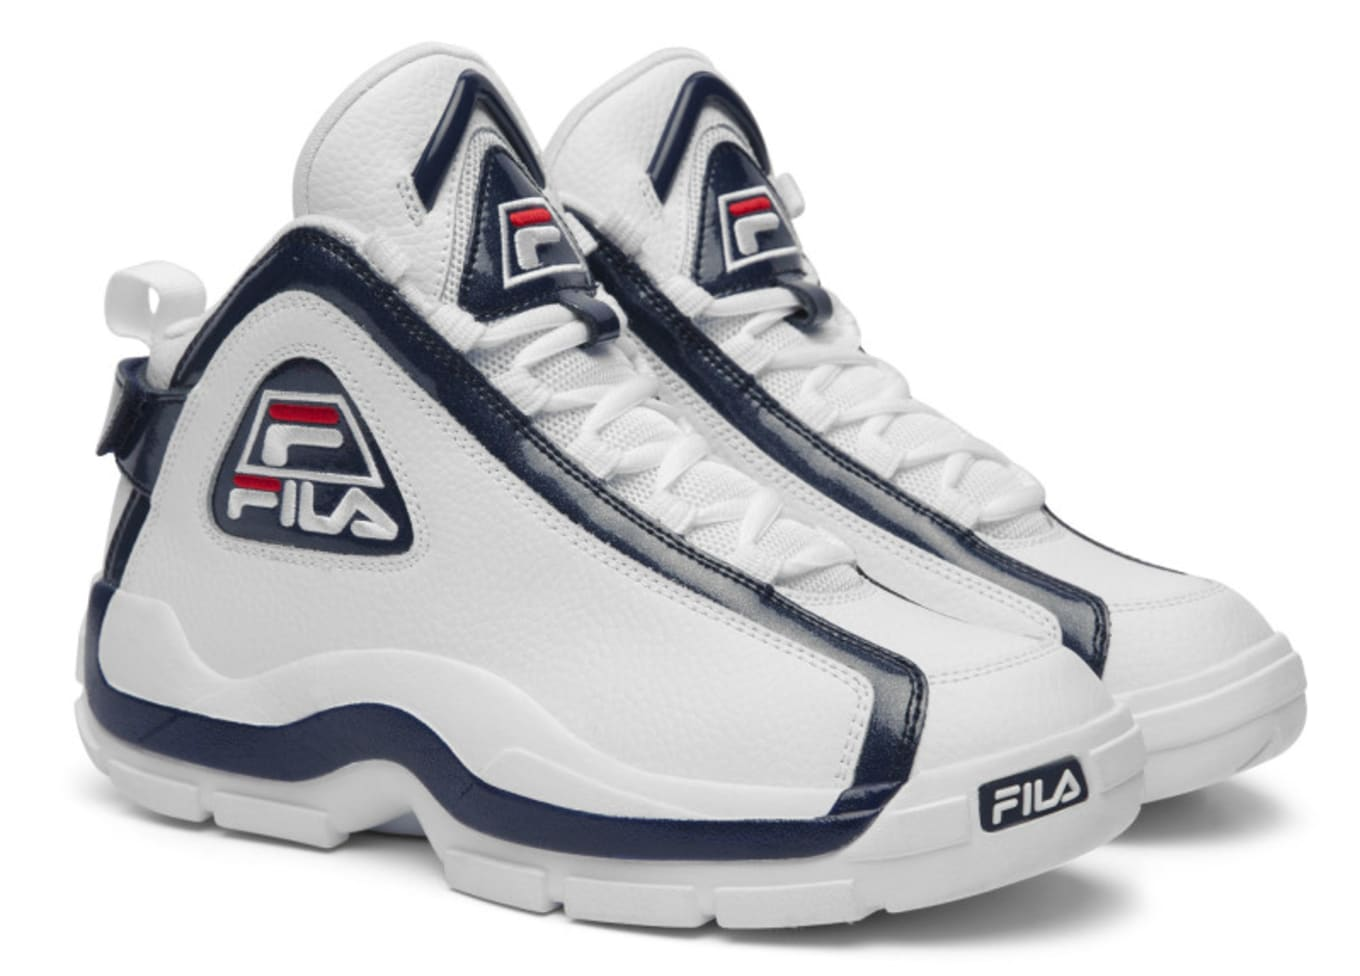 c8be28b5f614 Grant Hill Says He Personally Sent Tupac Fila Sneakers